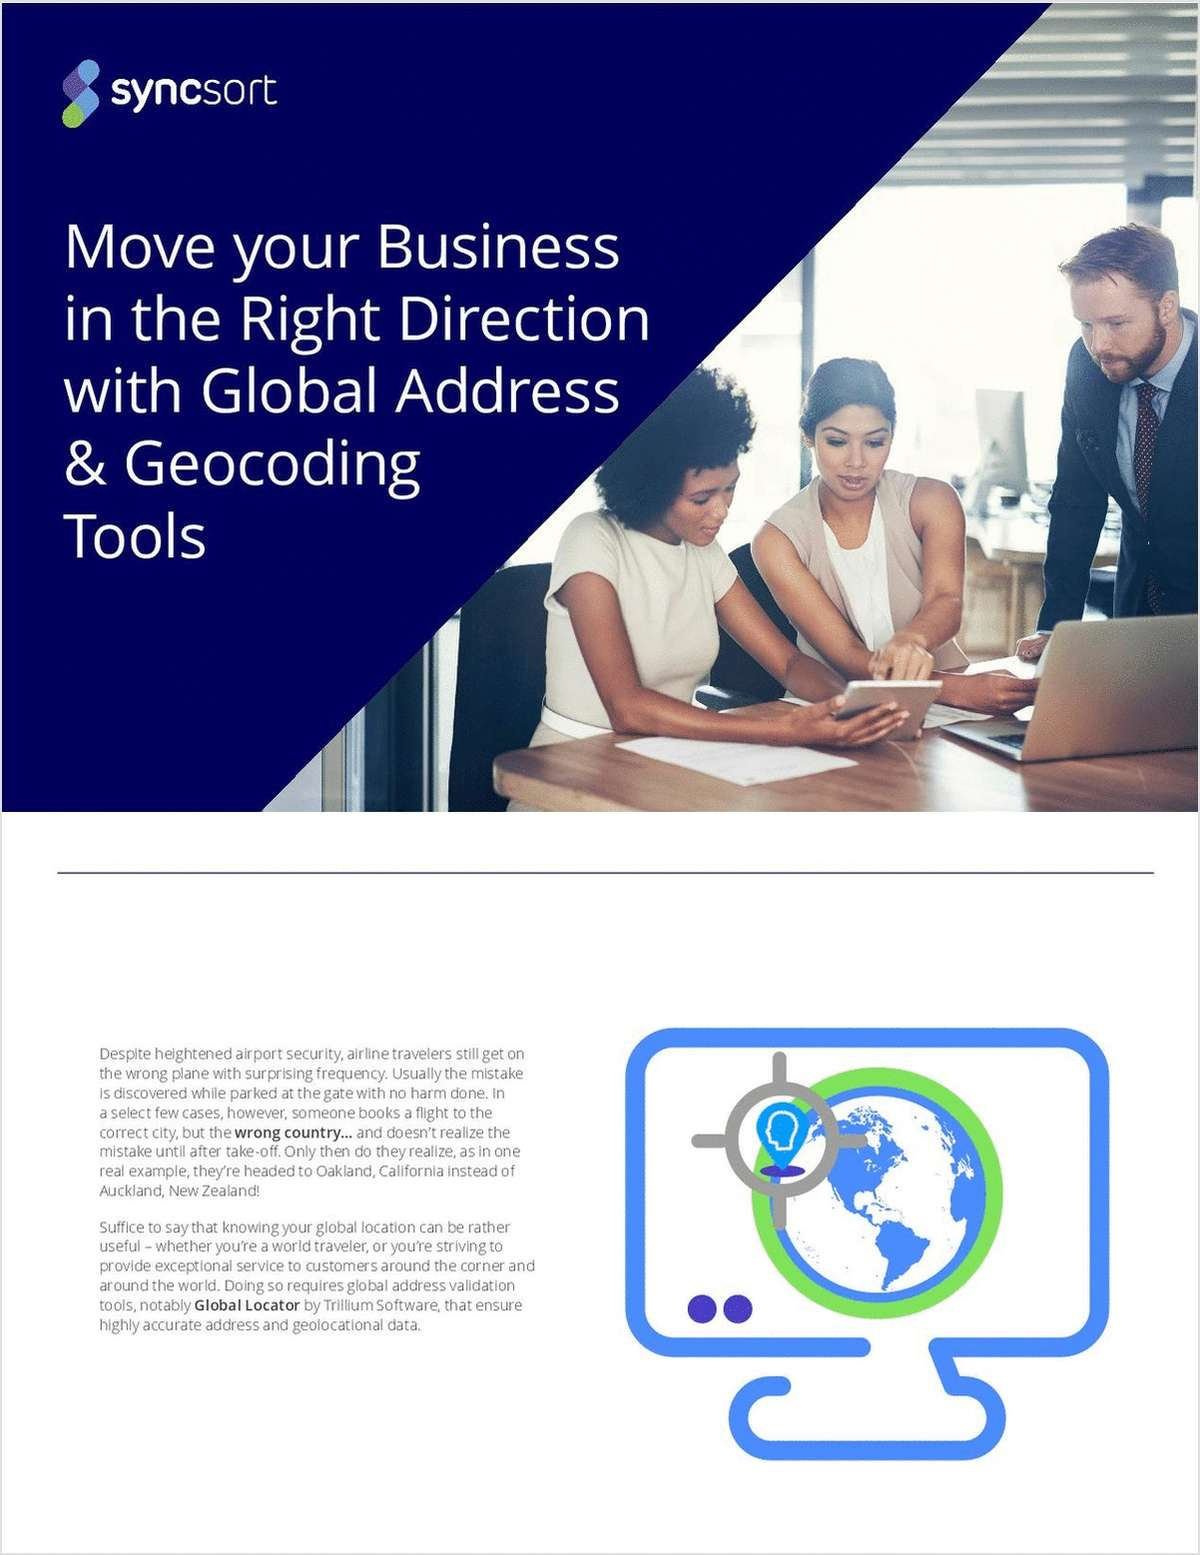 Move Your Business in the Right Direction with Global Address & Geocoding Tools